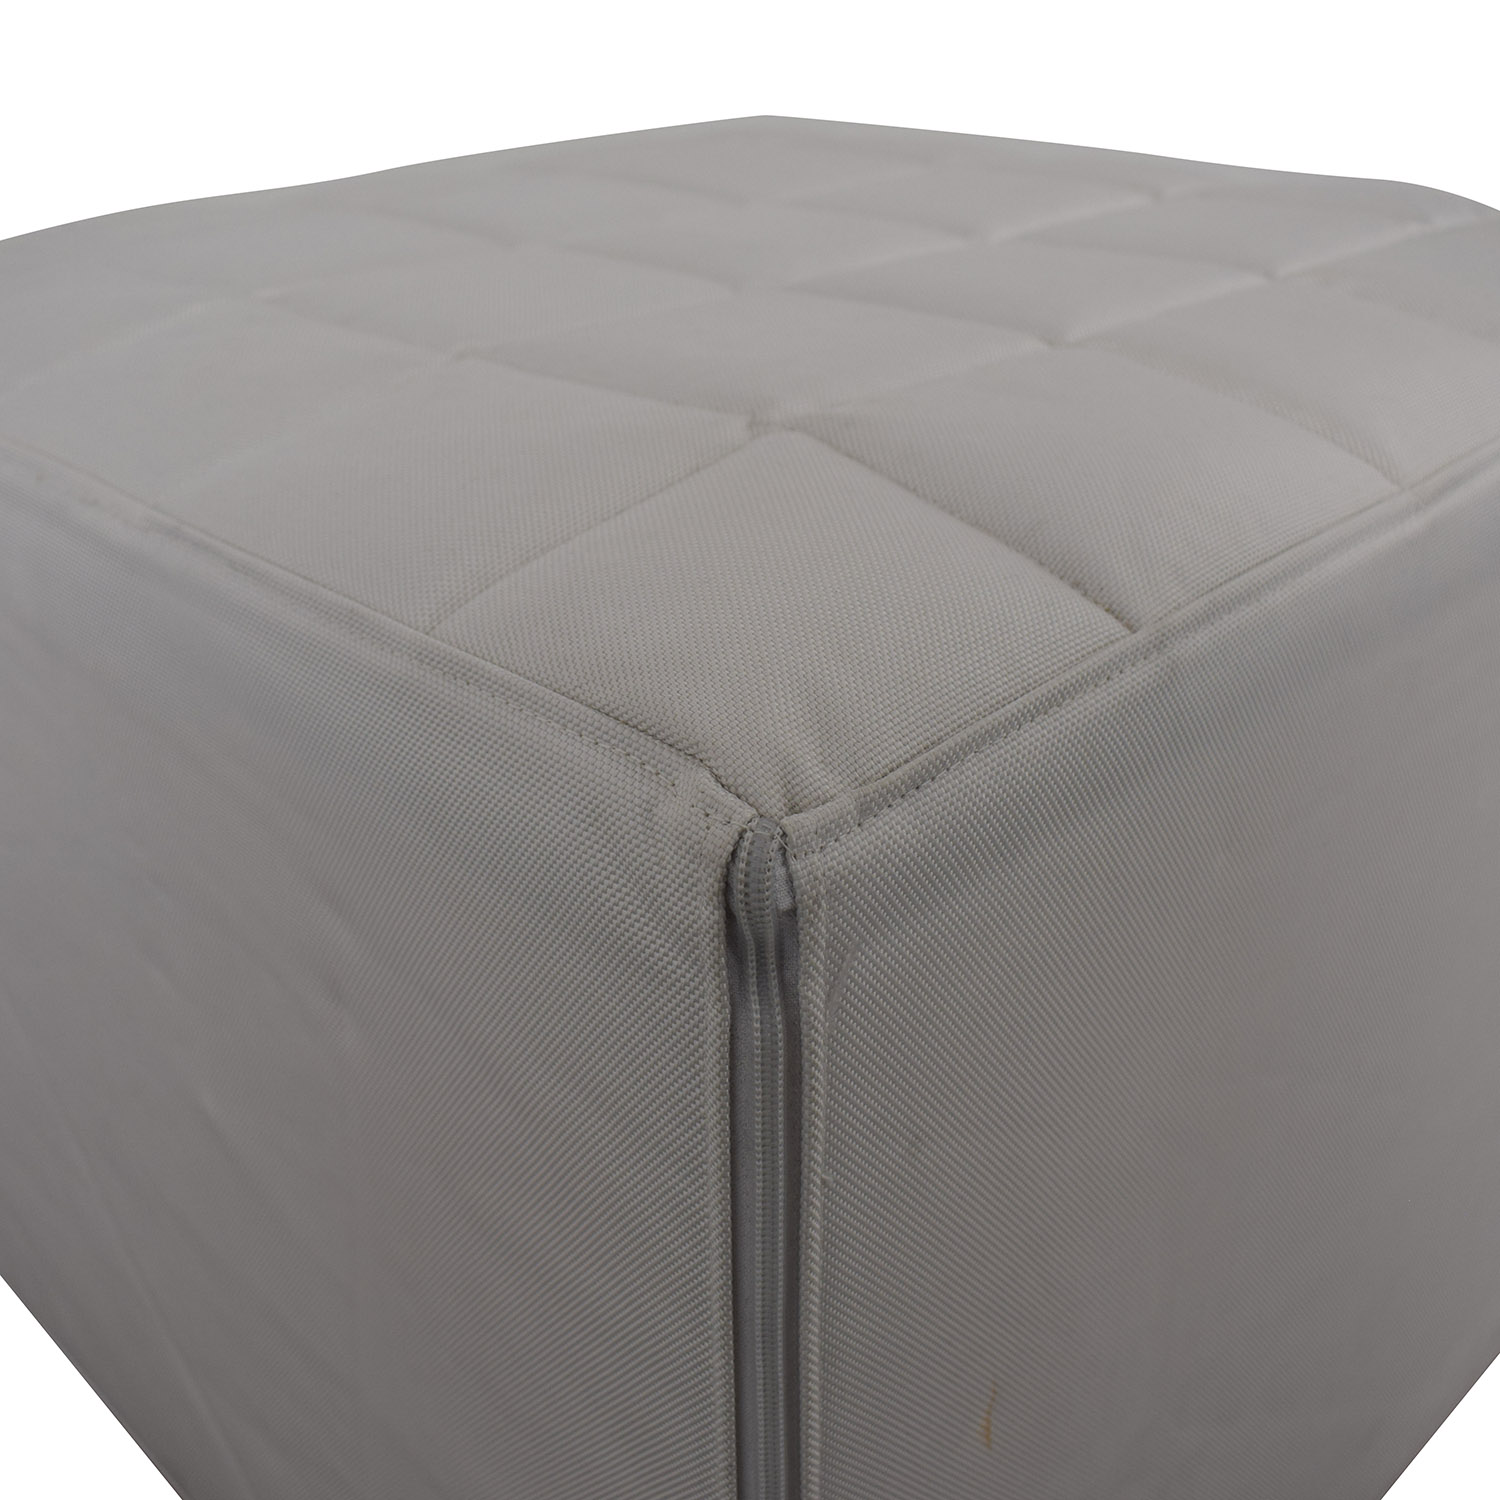 Fatboy Fatboy First Block Avenue Pouf for sale